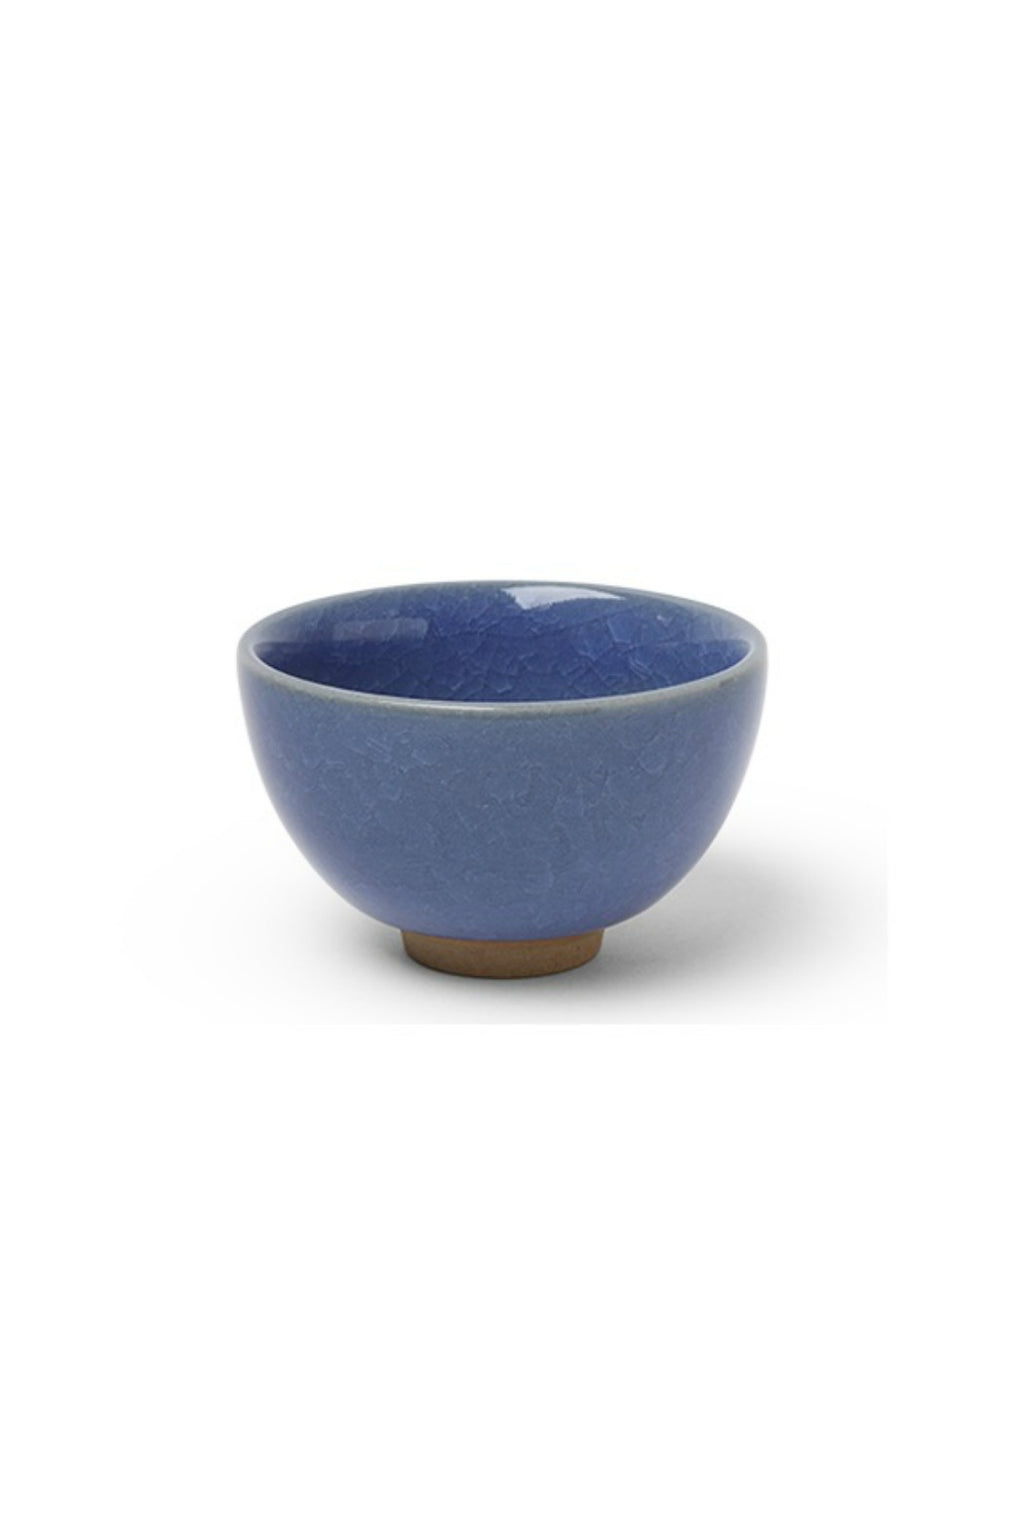 Miya Sakura Crackle Teacup - Blue